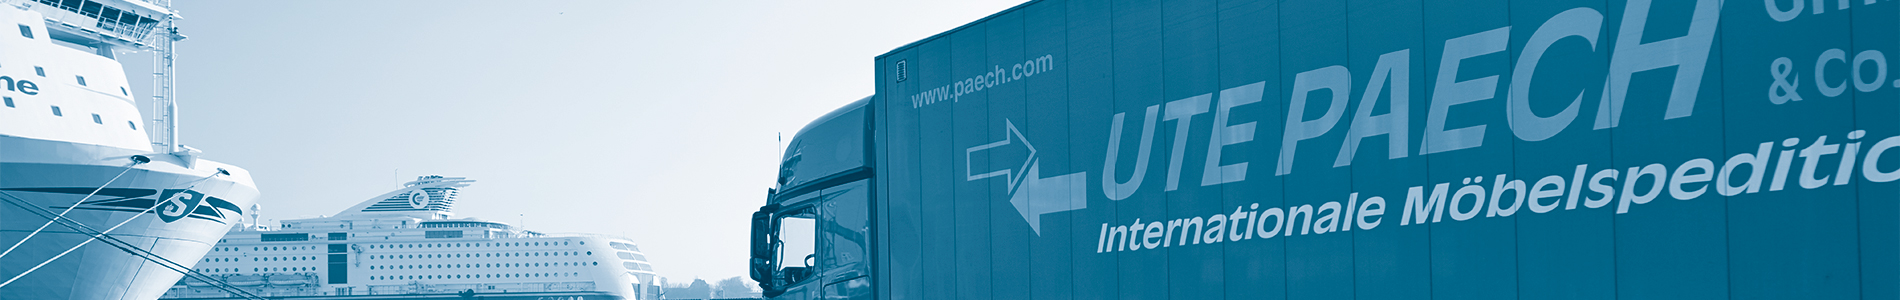 Ute Paech GmbH & Co. KG - Scandinavia Europe Worldwide